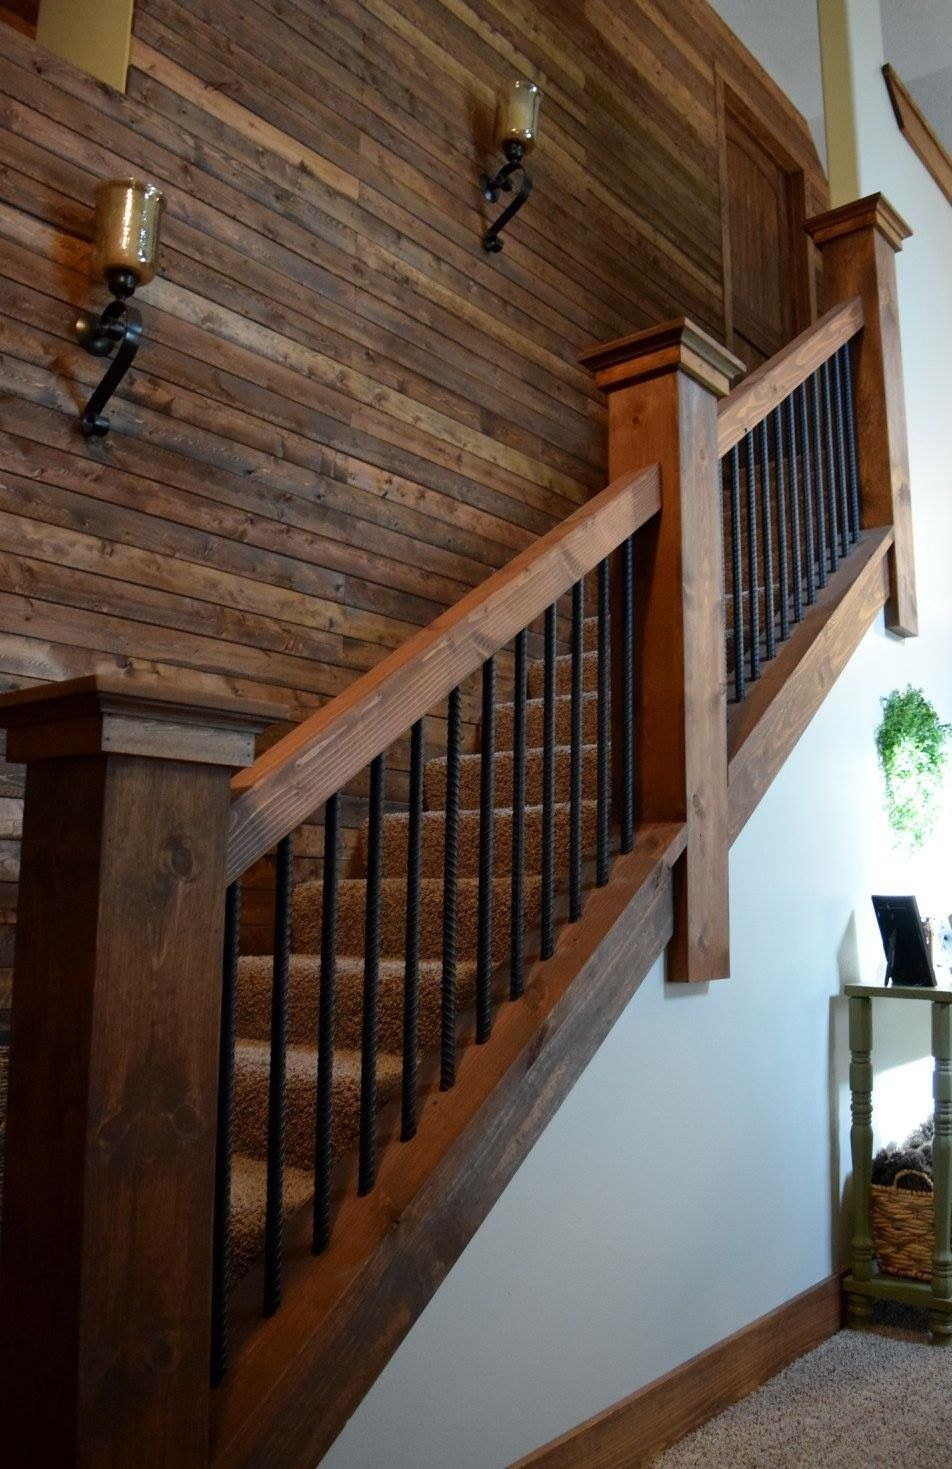 52 Best Staircase Lighting Images On Pinterest: Rebar Staircase Unique Farmhouse Industrial Rustic